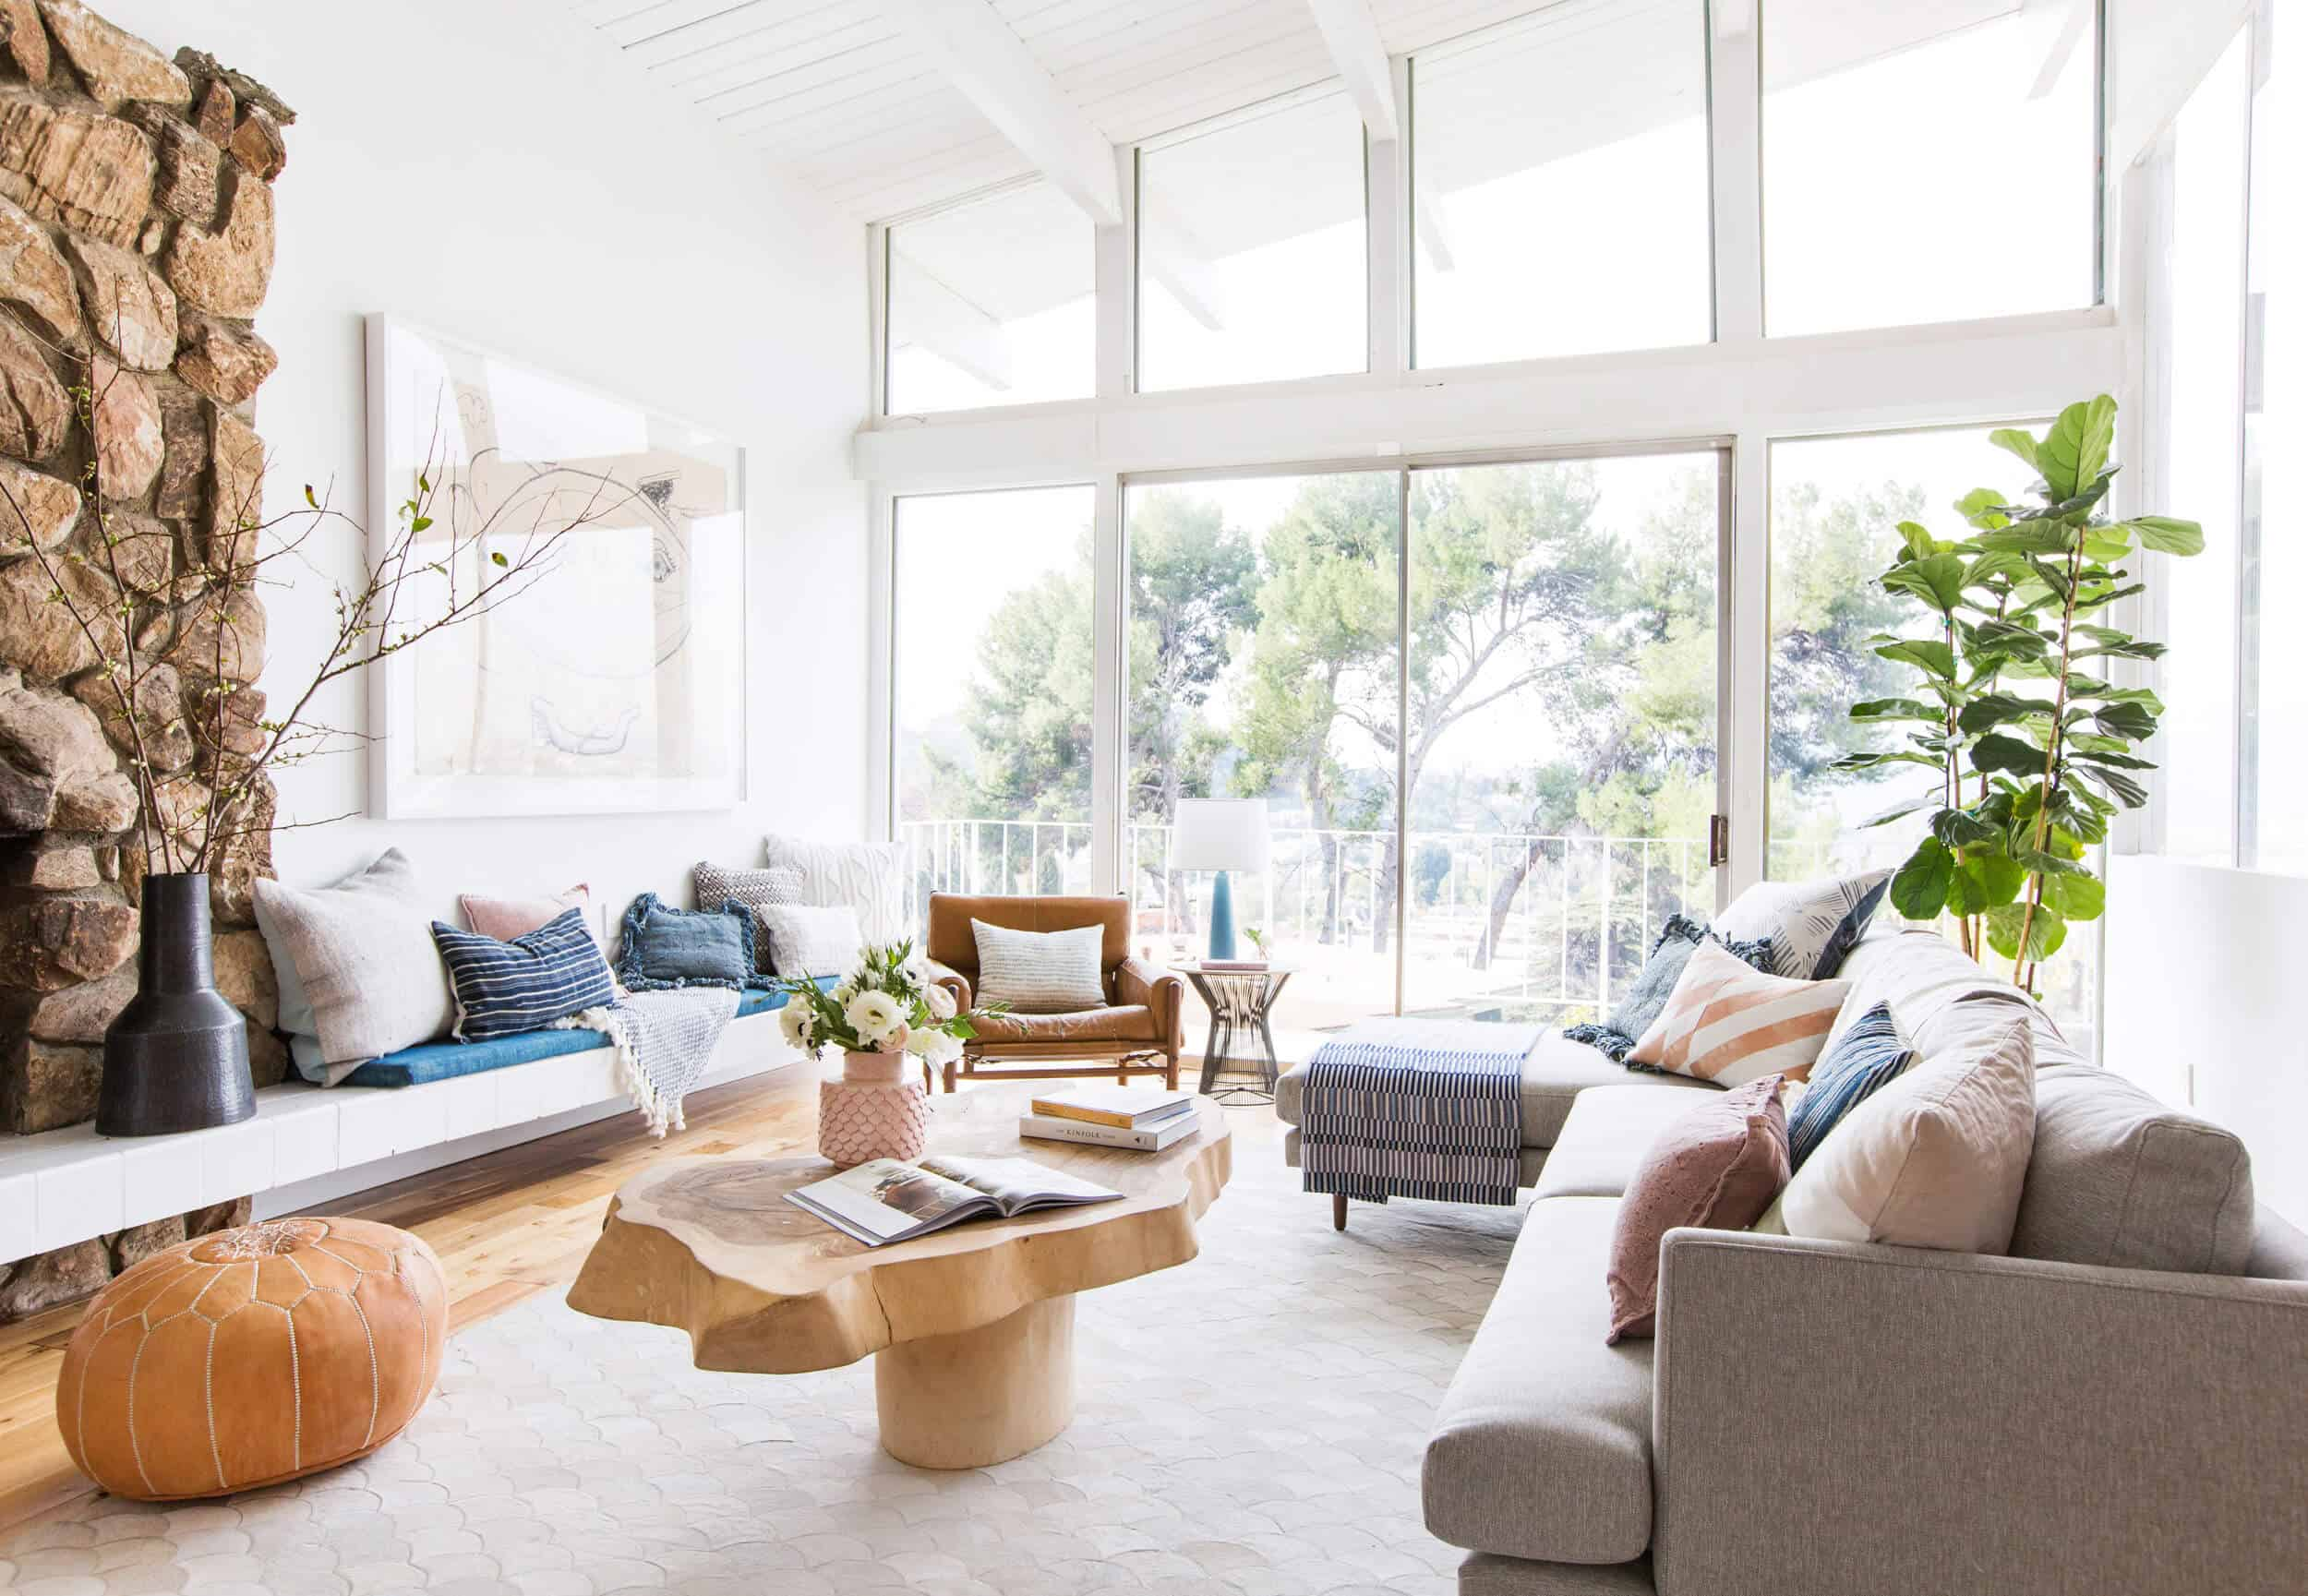 Emily Henderson_Living Room_Staged To Sell_Boho_Mid Century_Eclectic_Blue_White_Styled_Couch_Sectional_Staged12